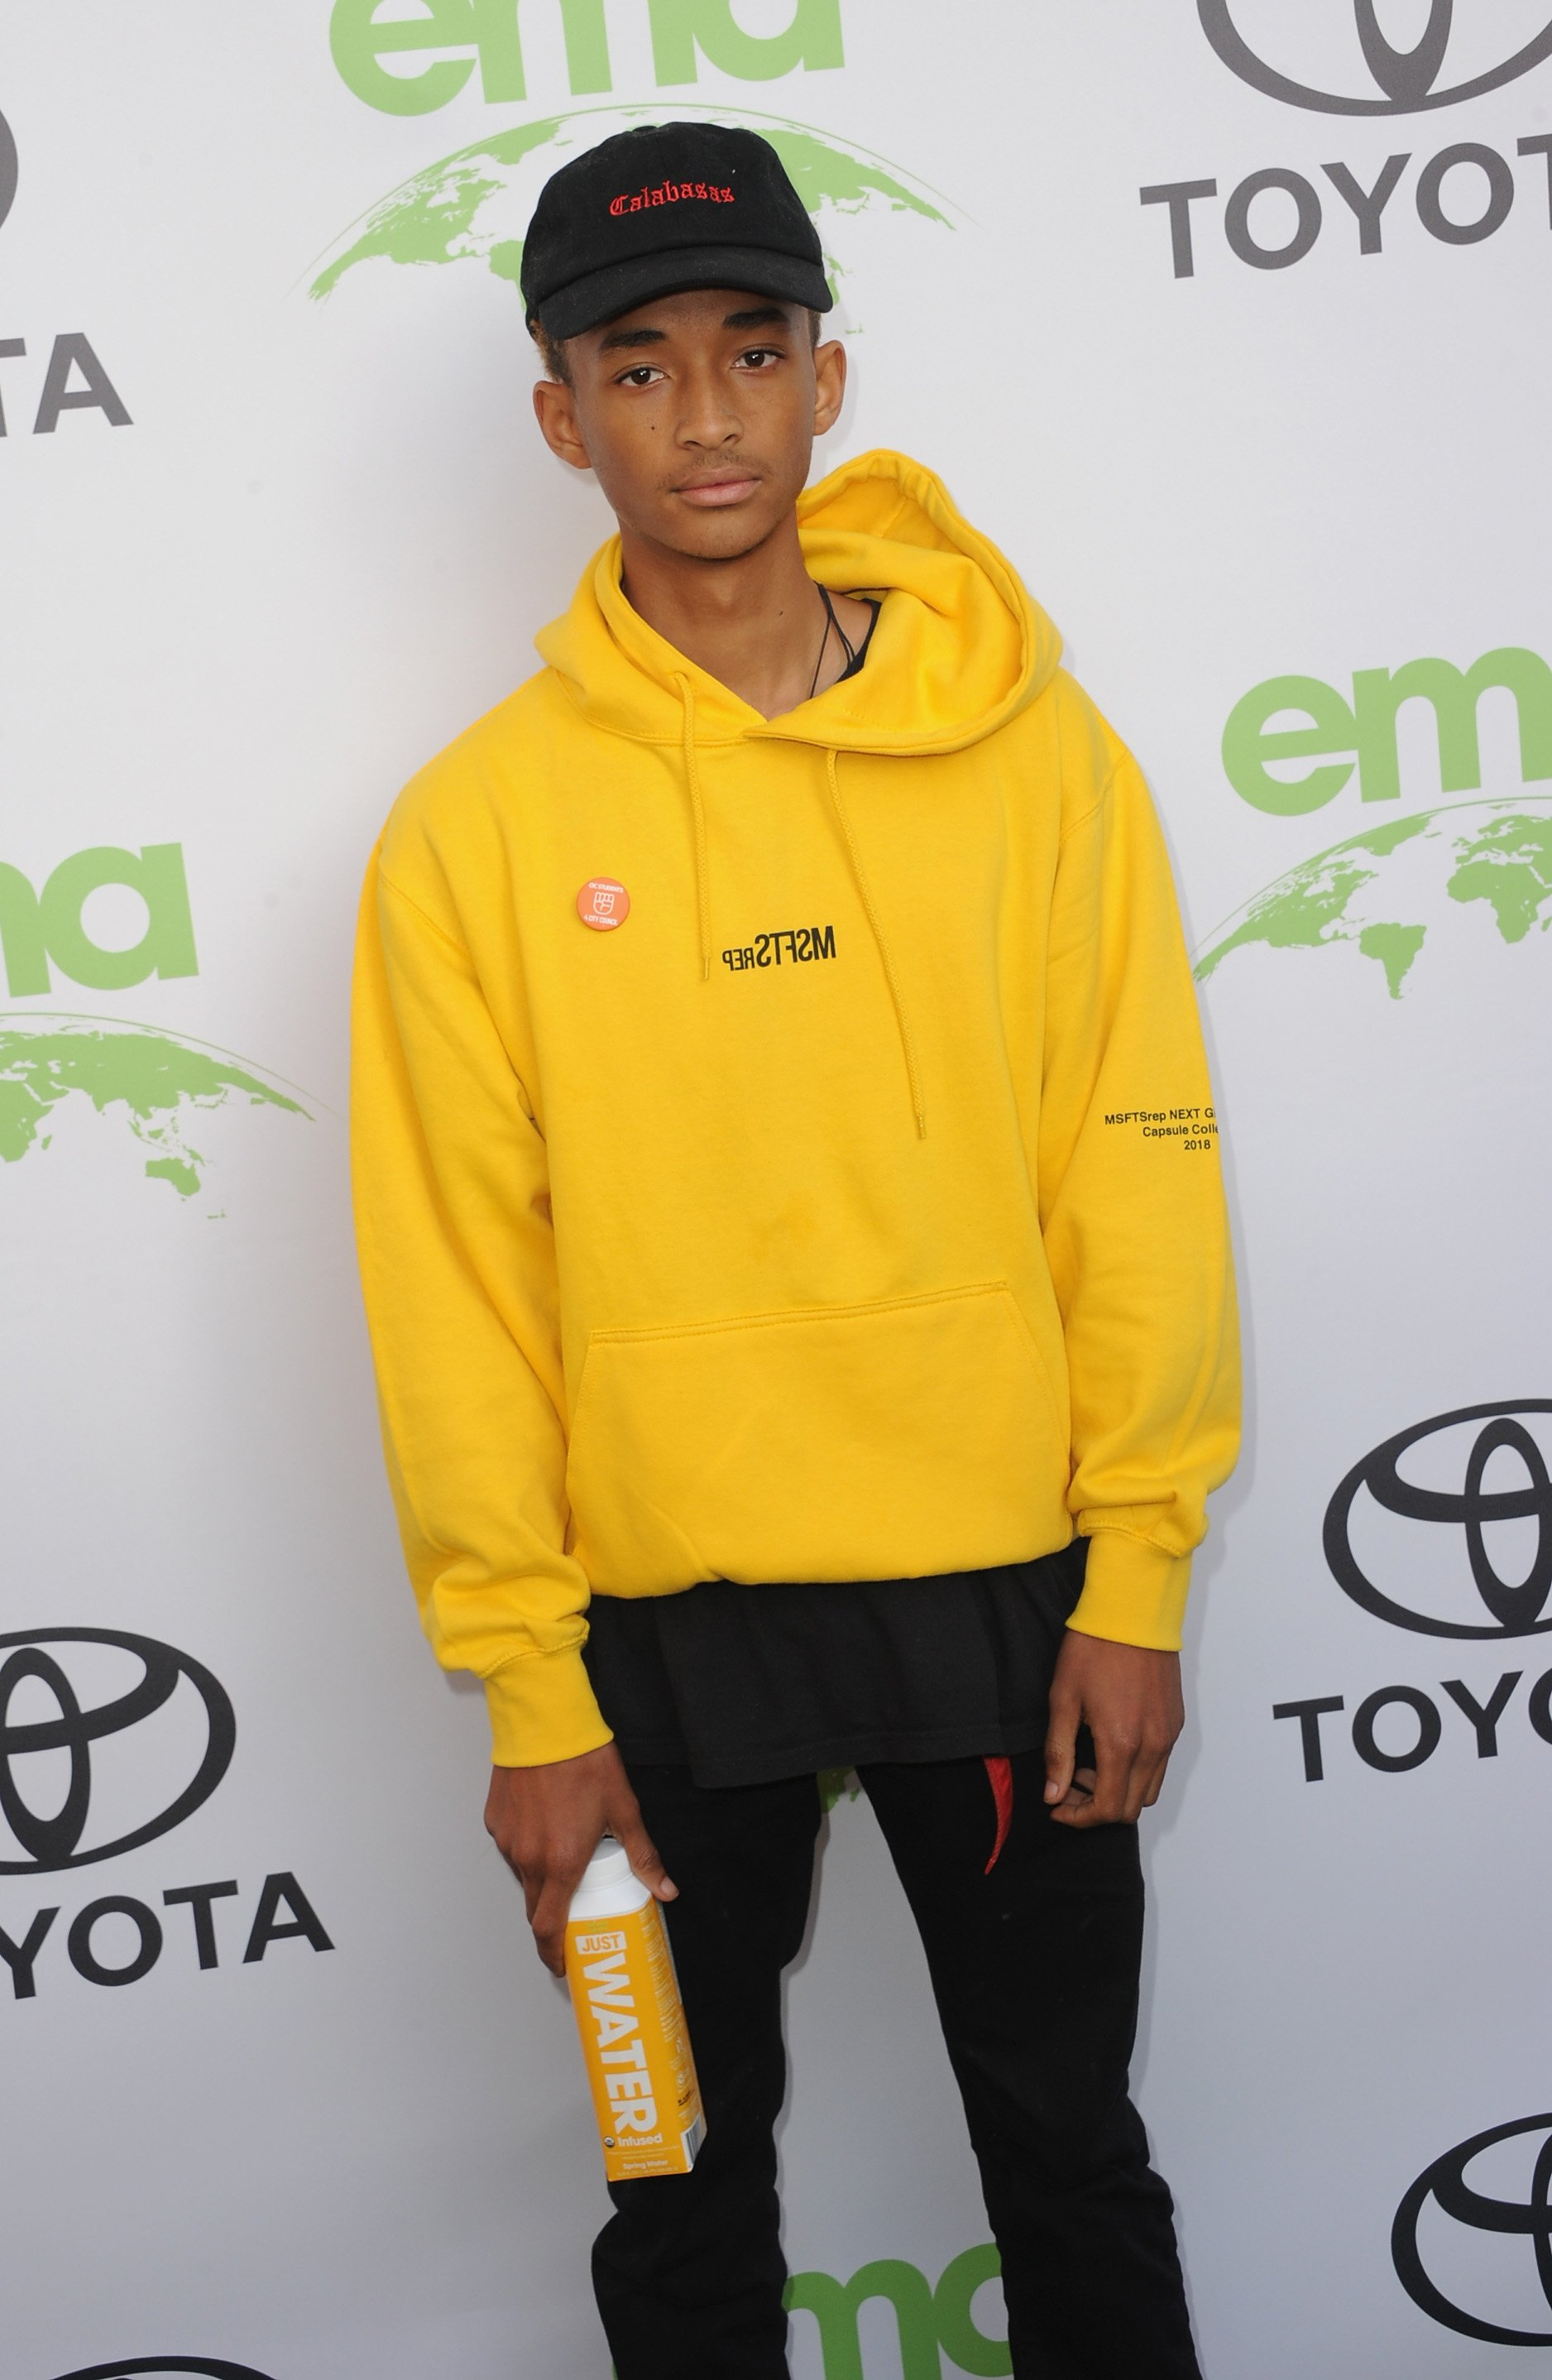 Jaden Smith at the 28th Annual Environmental Media Awards in Beverly Hills, California on May 22, 2018.  Photo: Getty Images